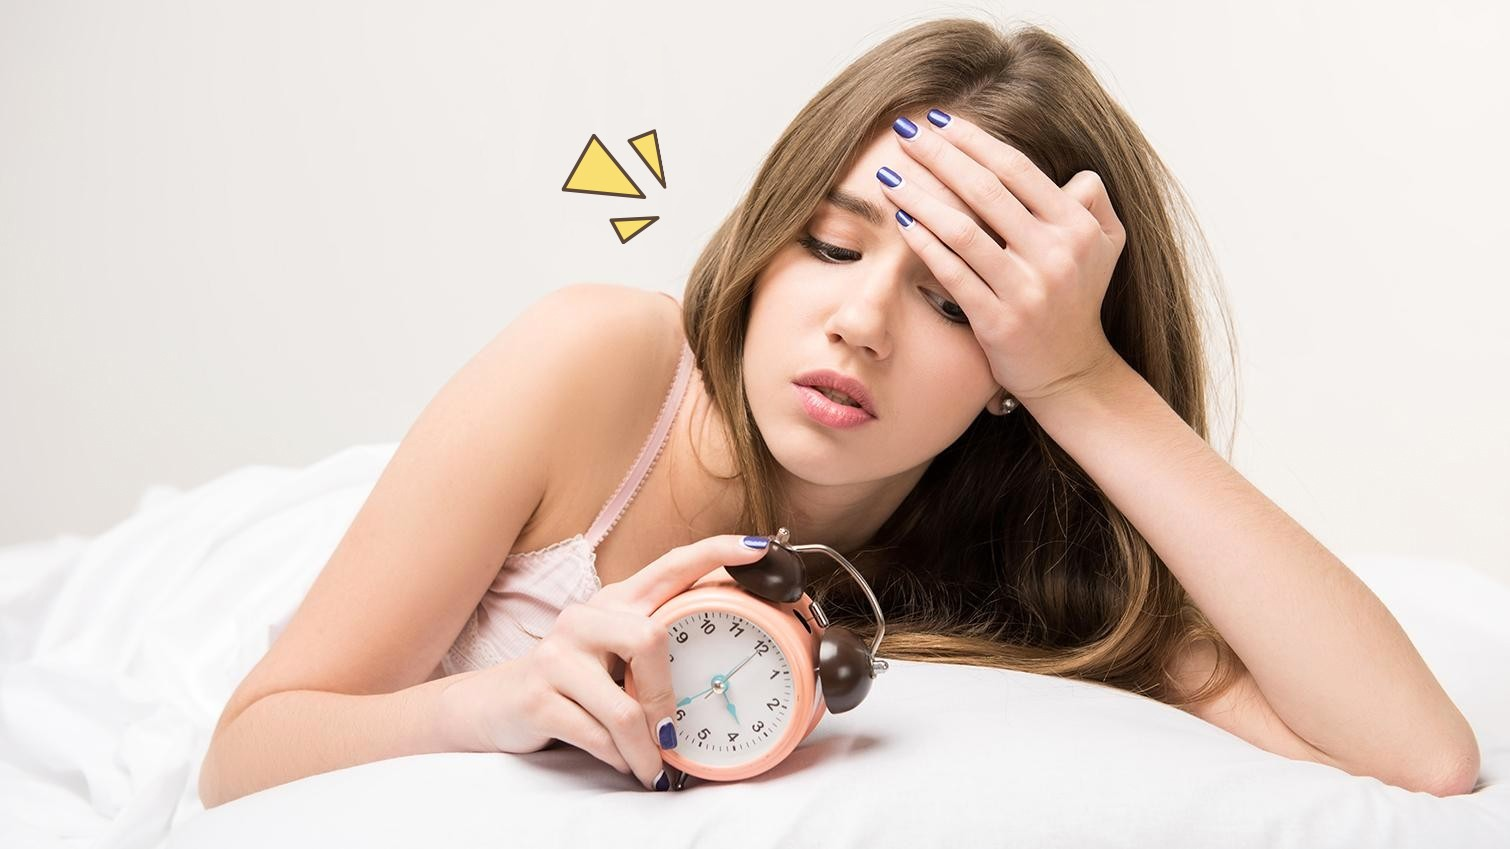 Ambien- an upgraded formula to deal with Insomnia